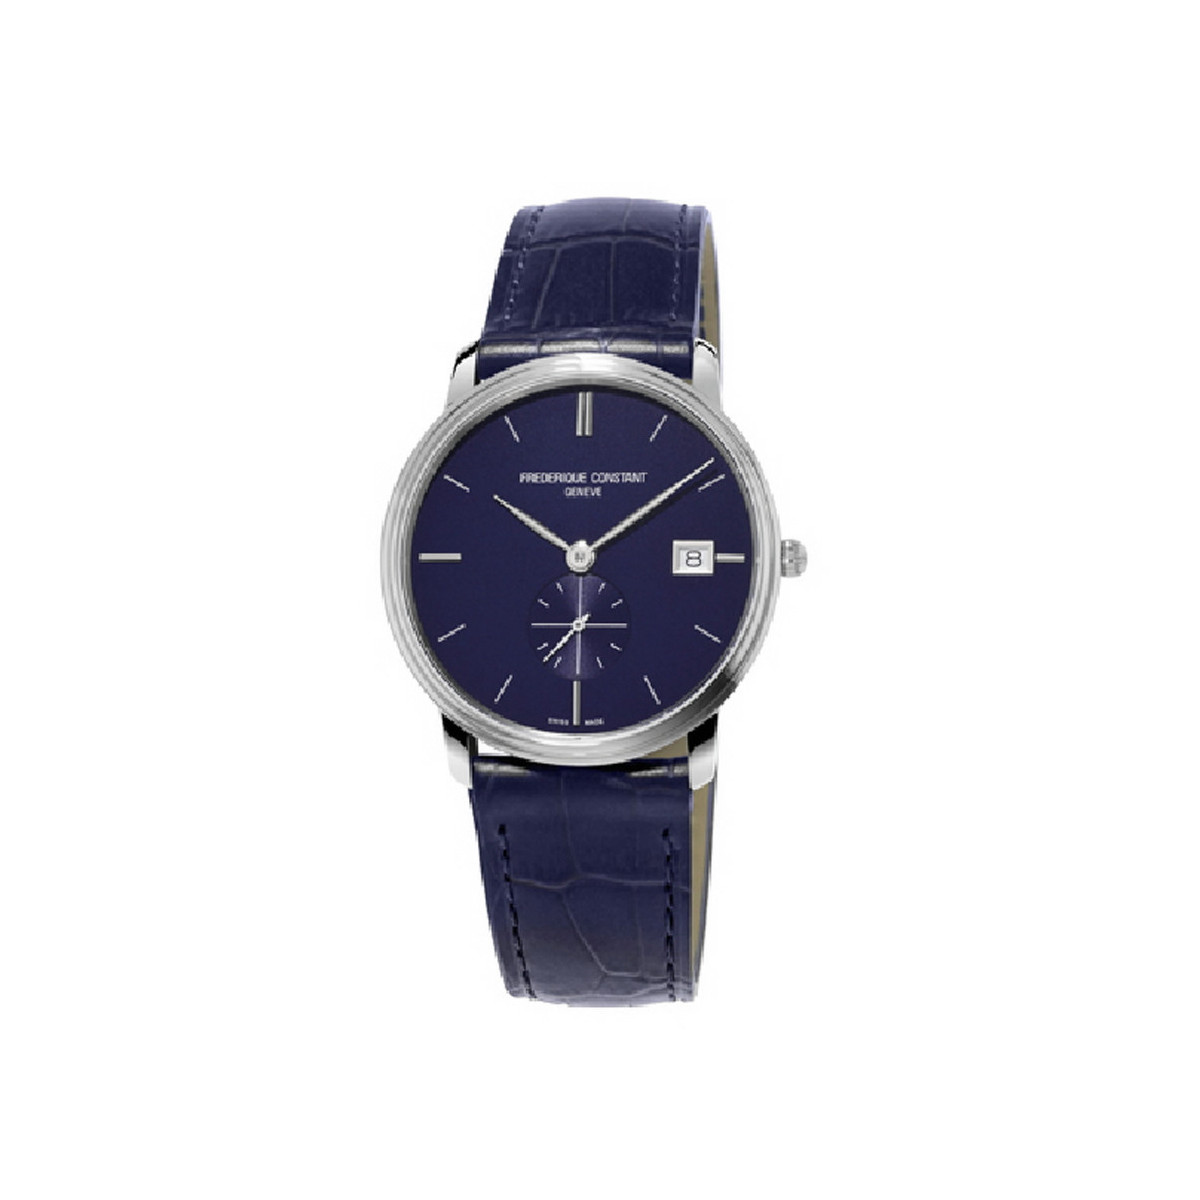 FREDERIQUE CONSTANT SLIMLINE GENTS BLUE SMALL SECONDS